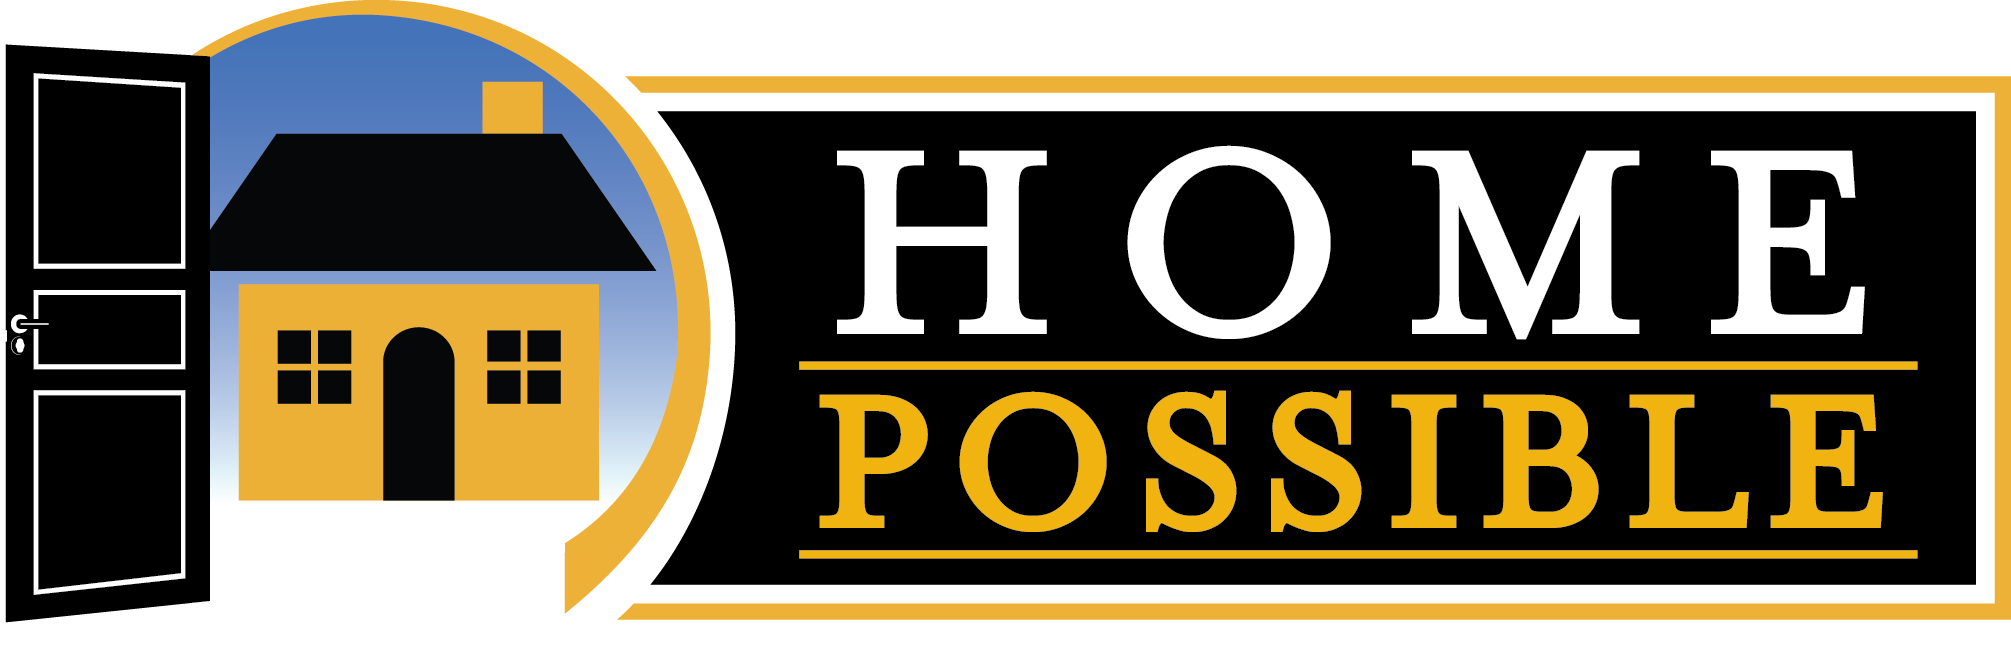 Home Possible